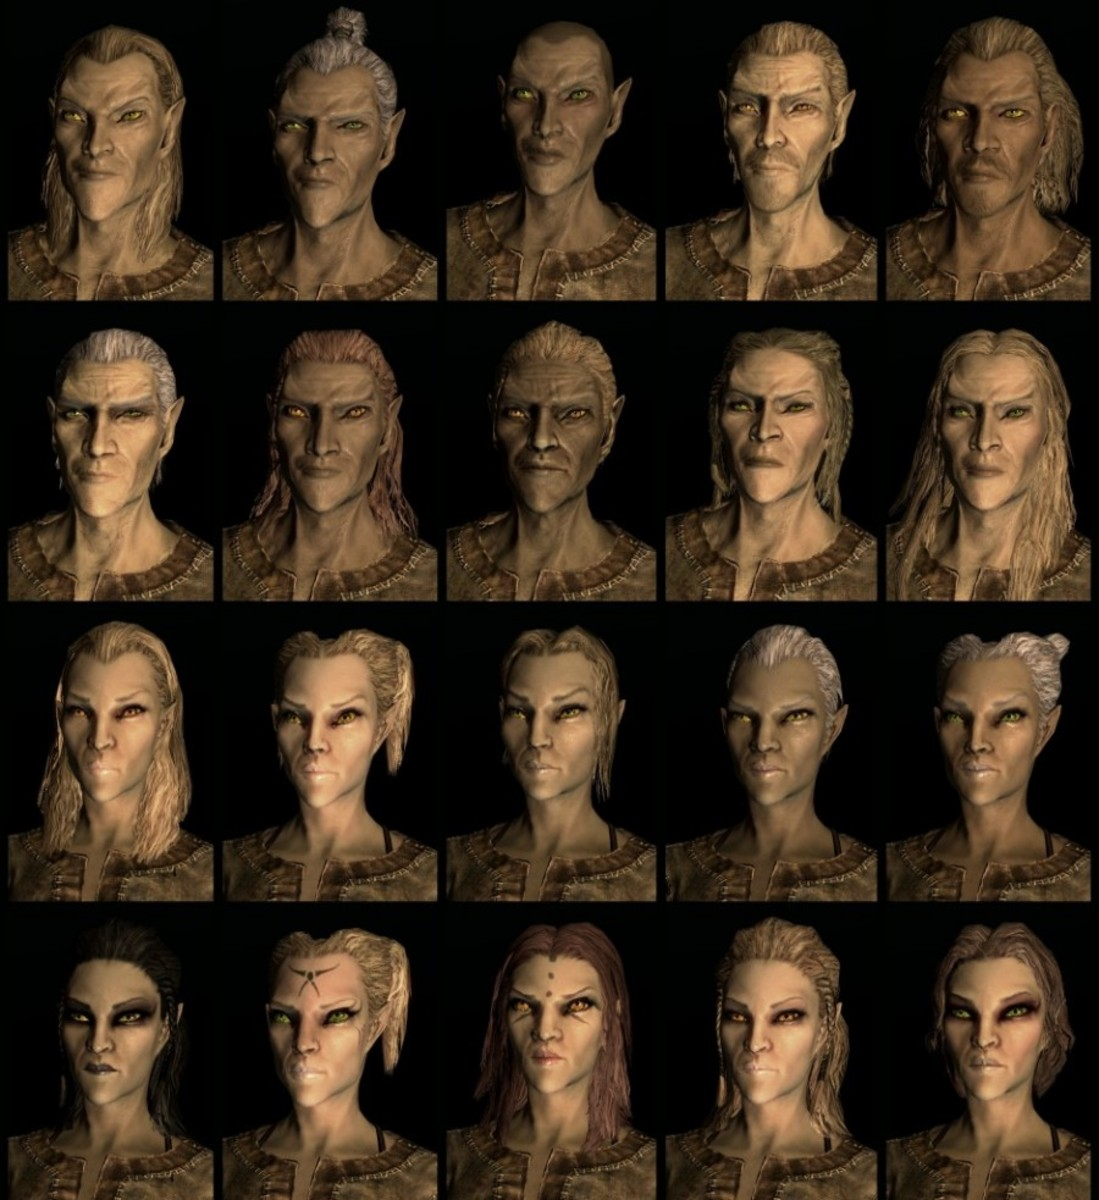 Compilation of Skyrim High Elf faces